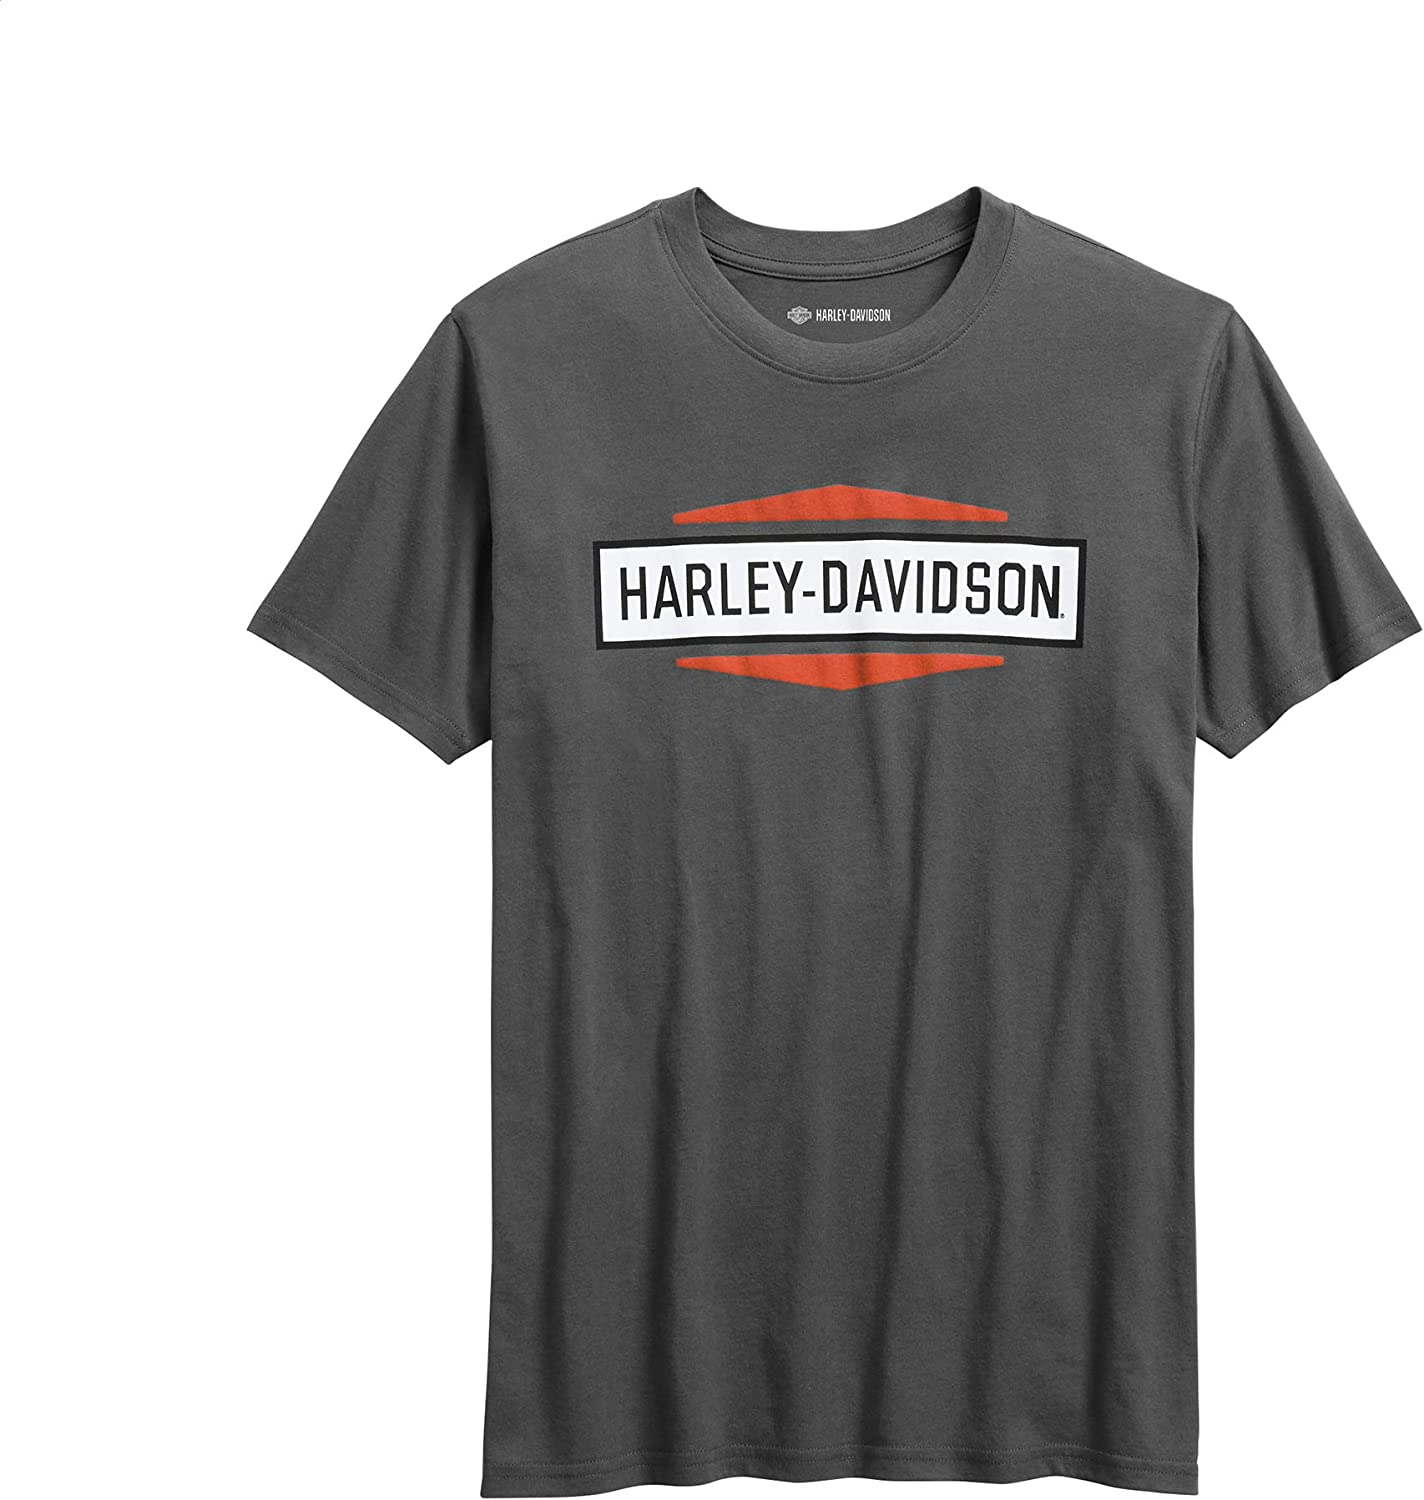 Harley-Davidson Stacked Graphic Fit Tee